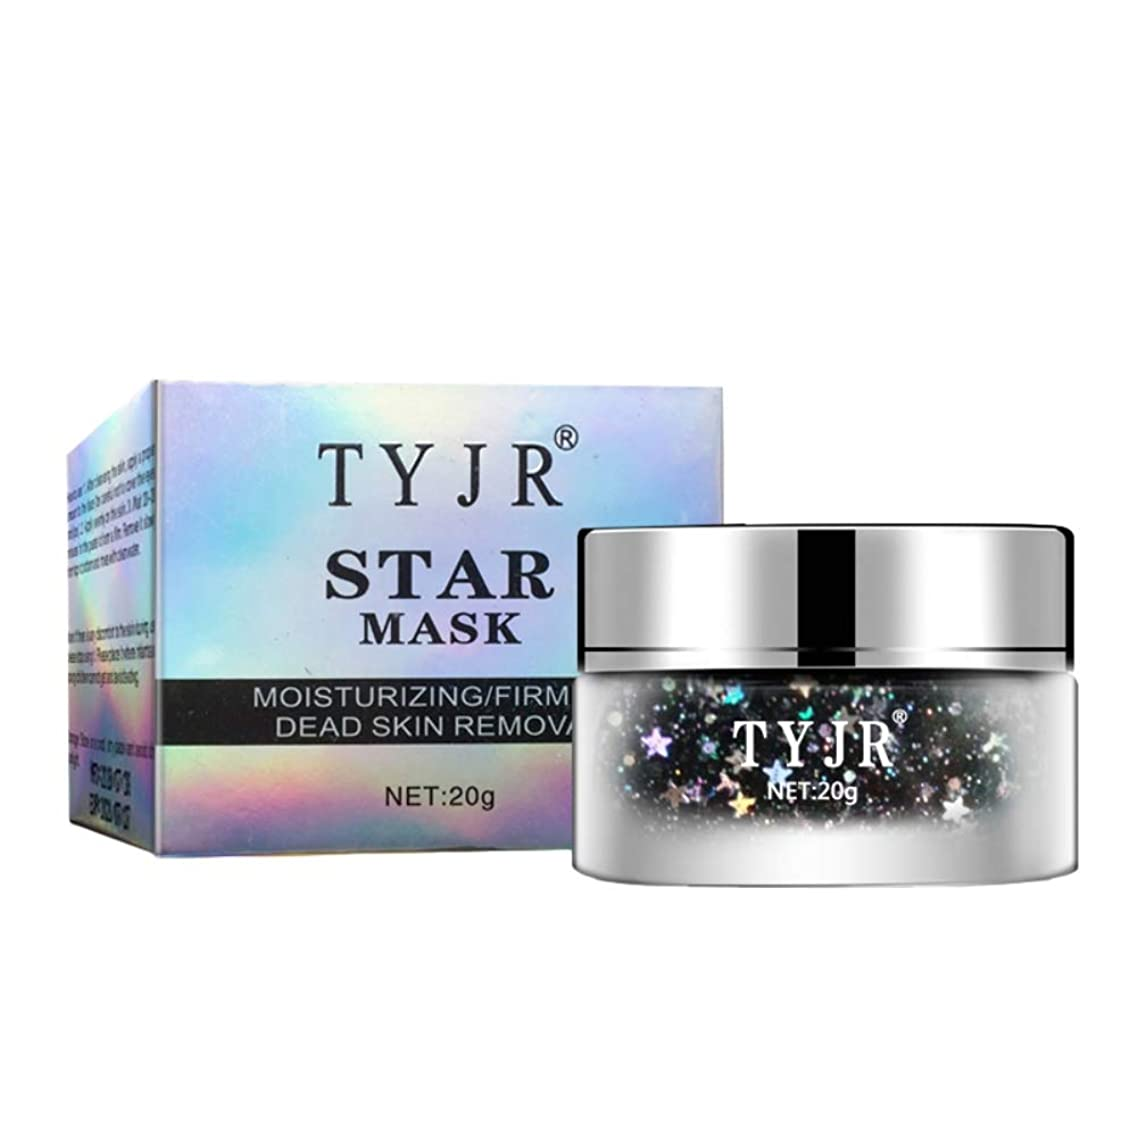 Yiitay Face Mask Star Mask Peel Off Glitter Starry Tearing Facial Mask Moisturizing Hydrating Anti Ageing Anti Wrinkle Firming Brighten Skin Reduce Pores 20g